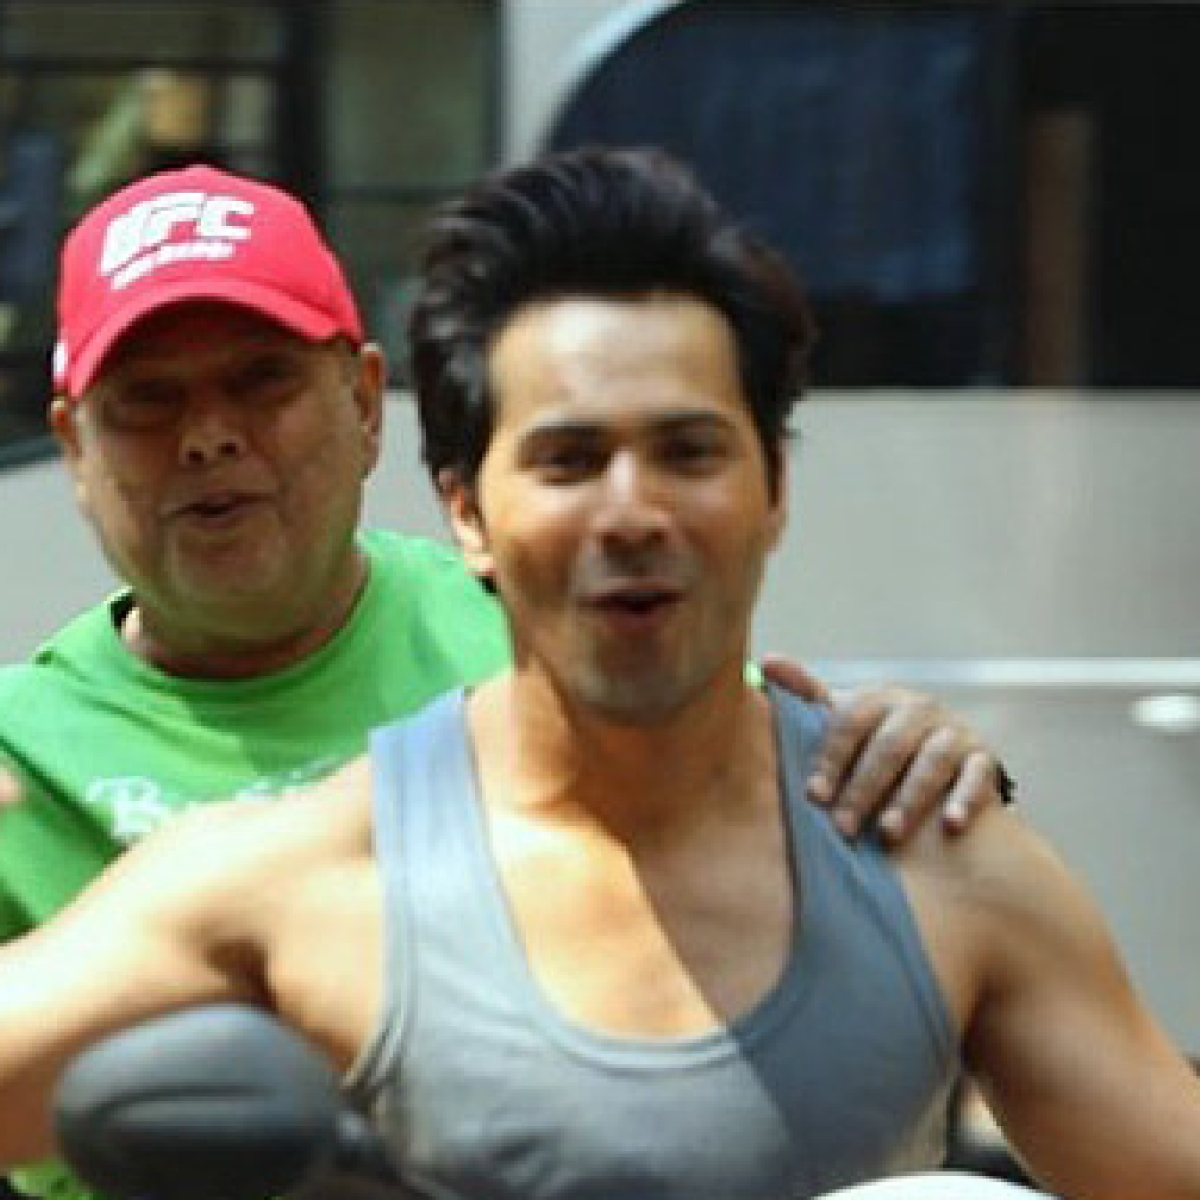 Watch: How Varun Dhawan kick-starts his day with dad David Dhawan on 'Coolie No 1' set